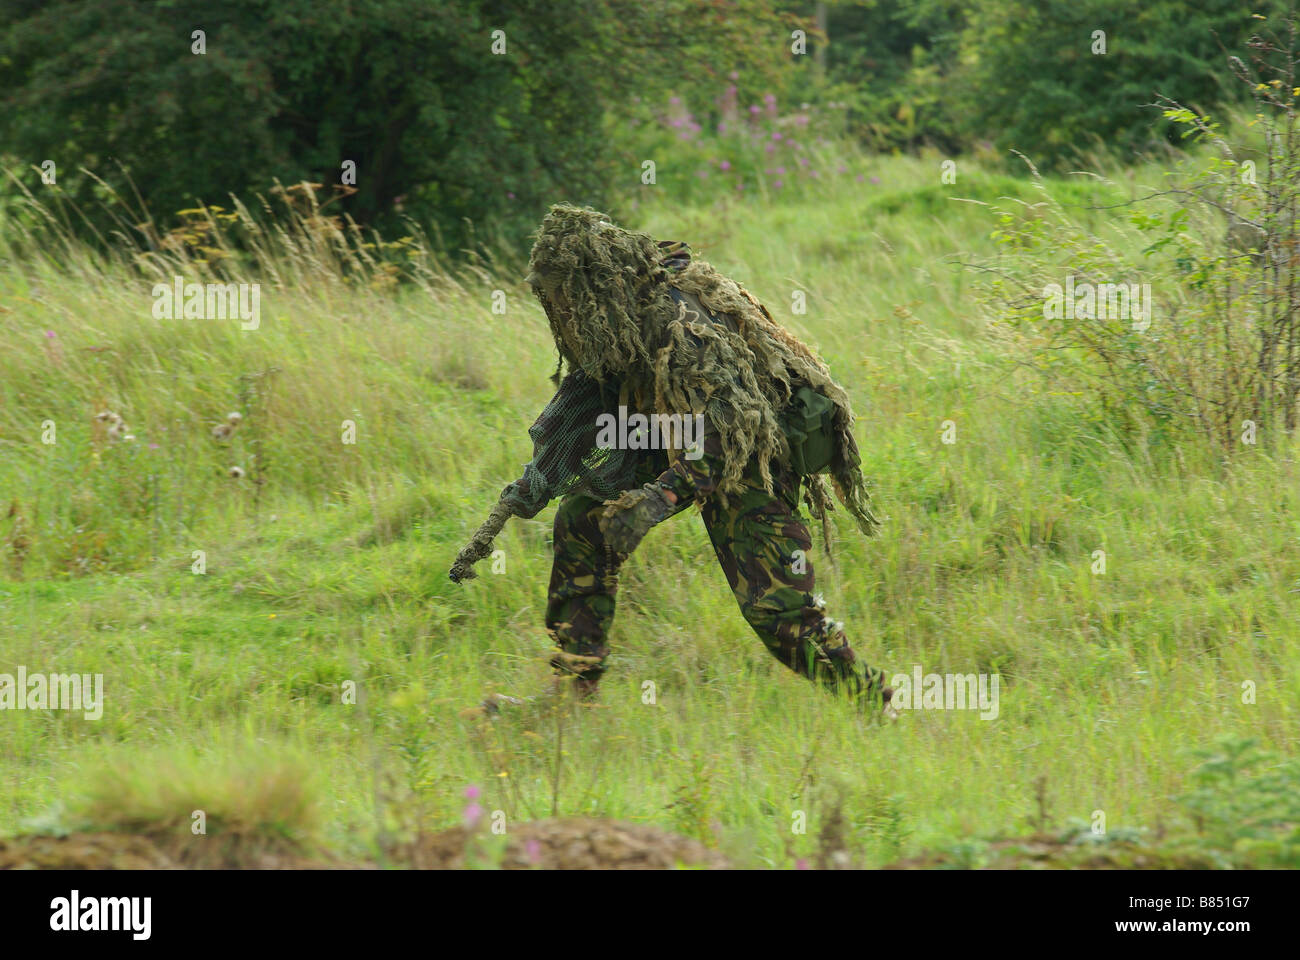 how to make a sniper ghillie suit